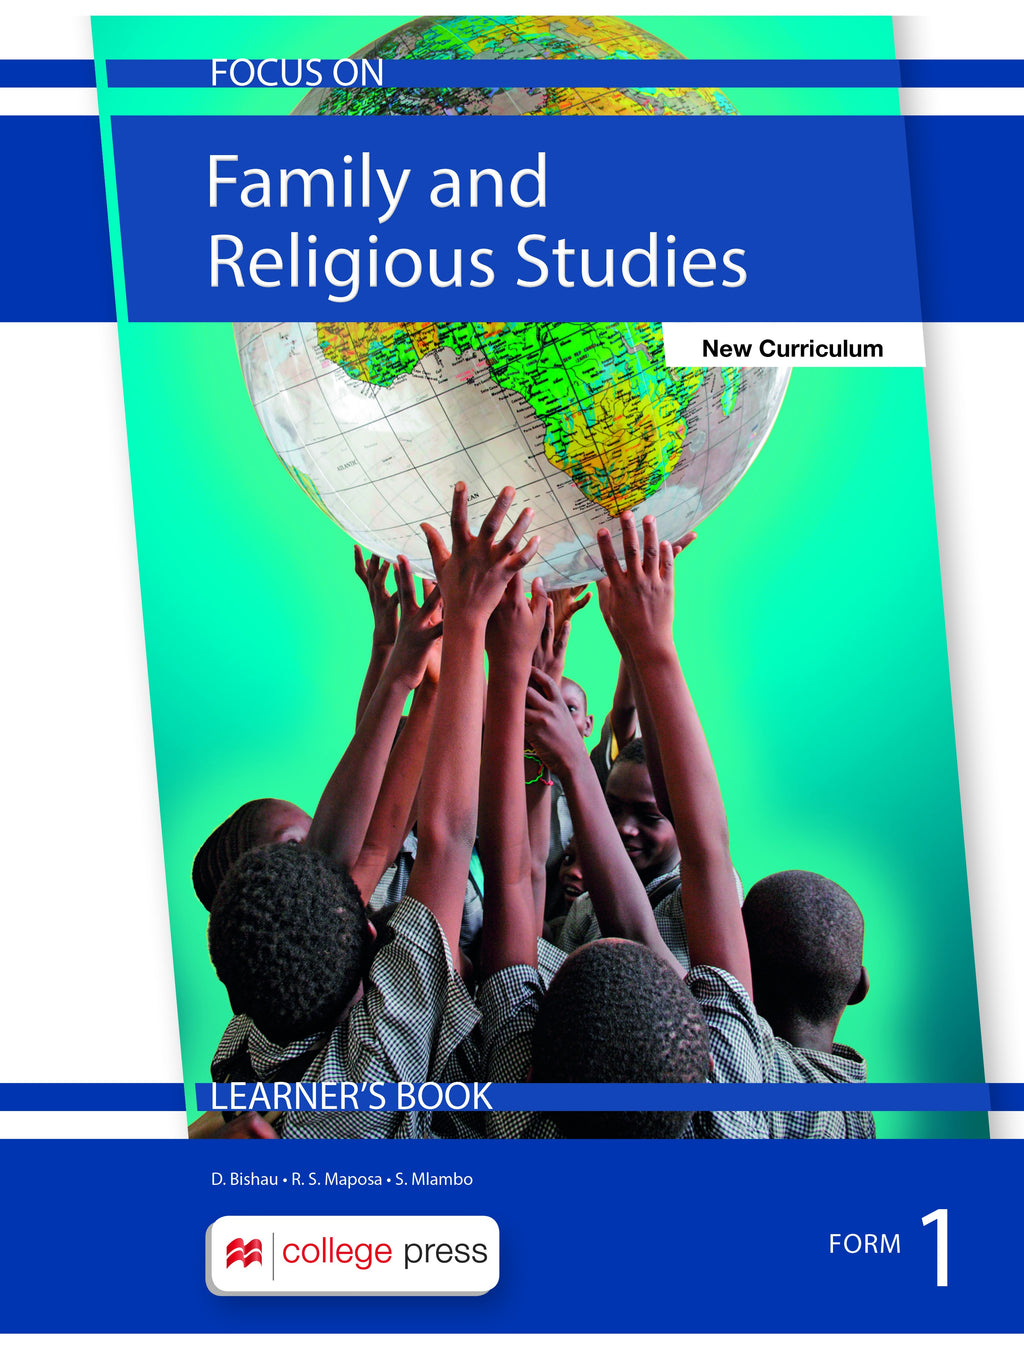 Focus on Family and Religious studies Learner's Book FORM1